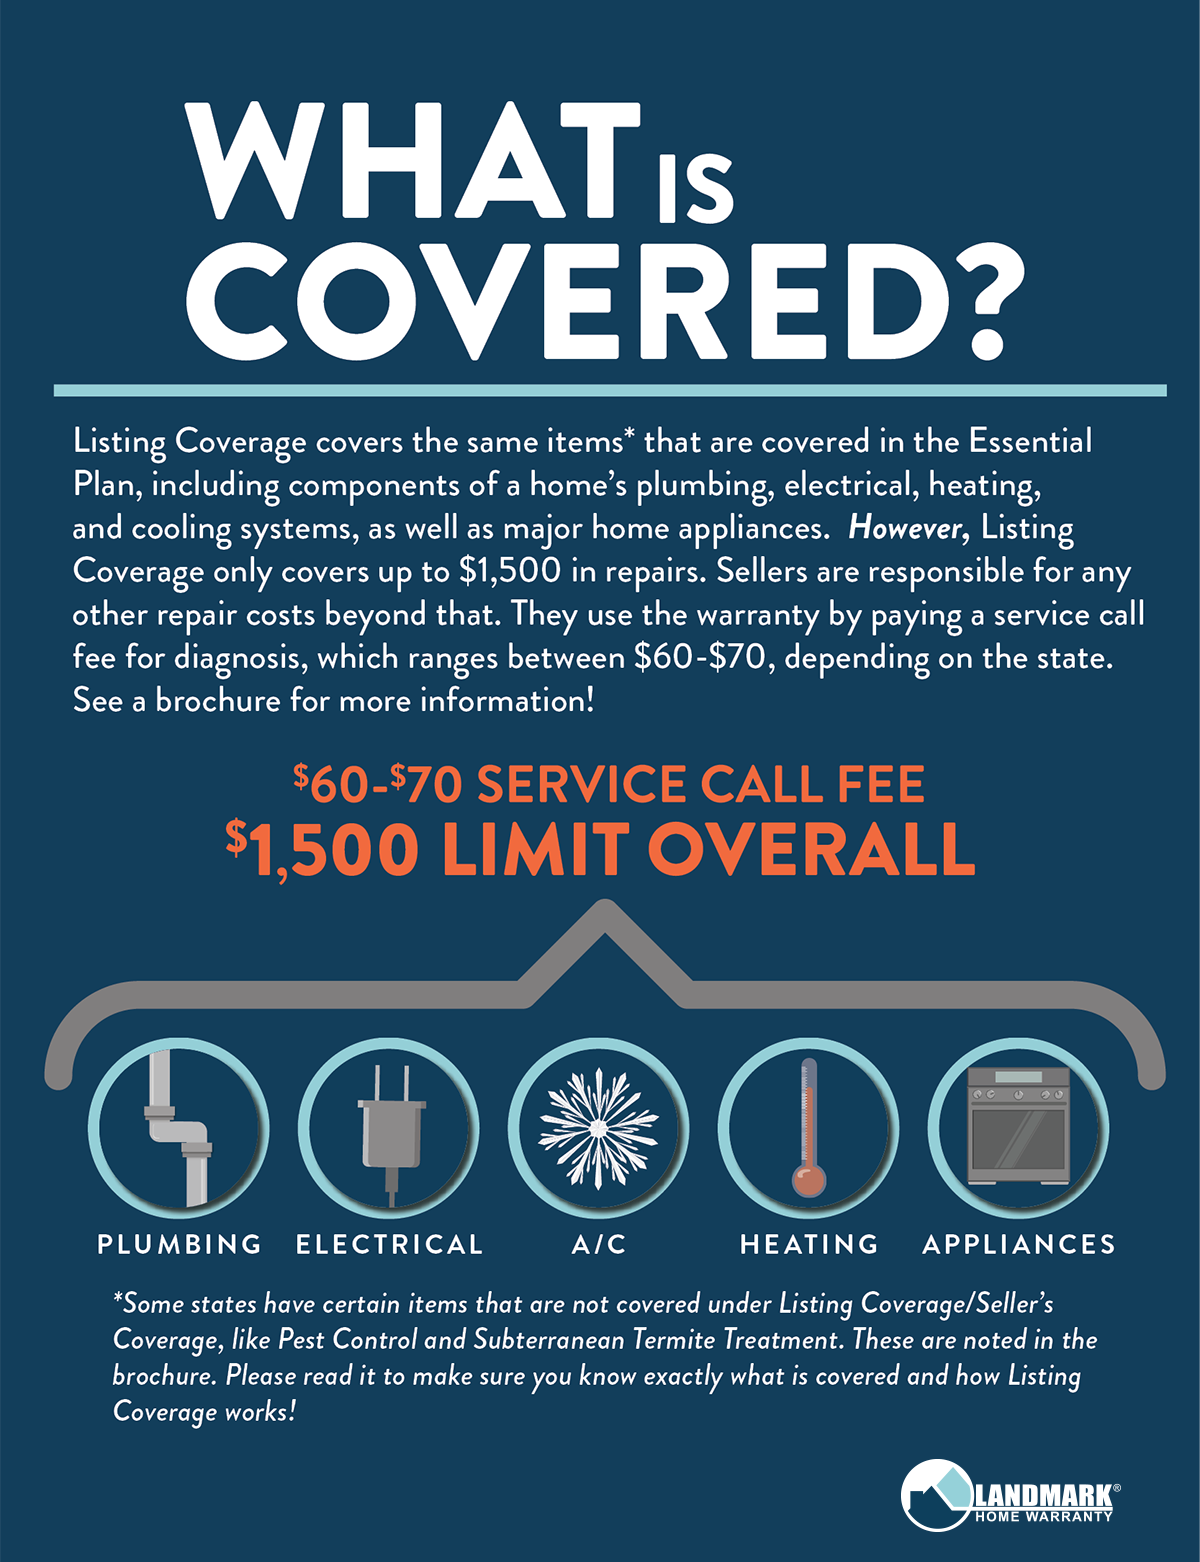 What does listing coverage cover?